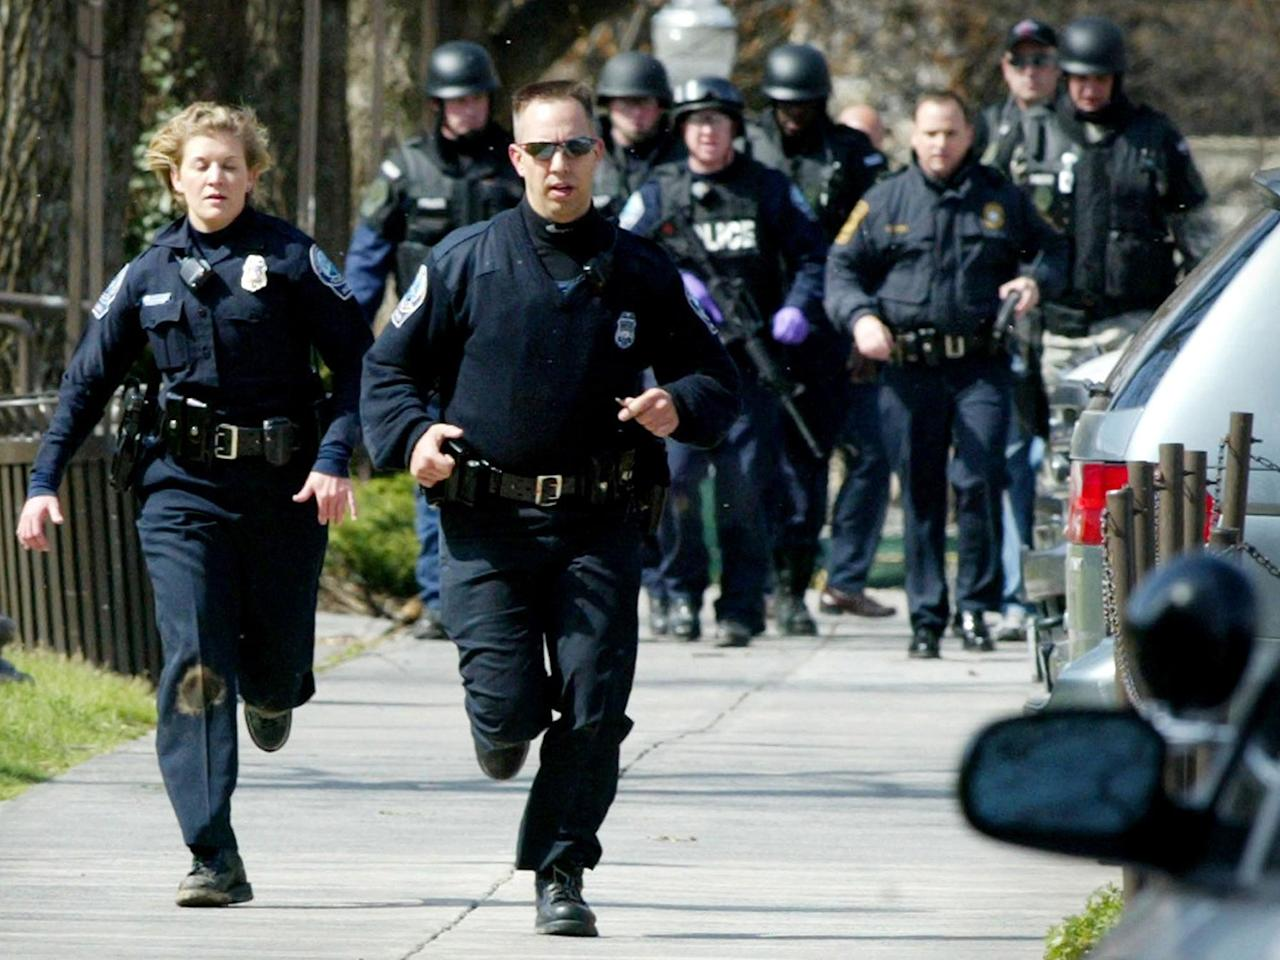 <p>Blacksburg police officers run from Norris Hall on the Virginia Tech campus in Blacksburg, Va., Monday, April 16, 2007. A gunman opened fire in a Virginia Tech dorm and then, two hours later, in a classroom across campus, killing 32 people. (Photo: Matt Gentry/The Roanoke Times/AP) </p>